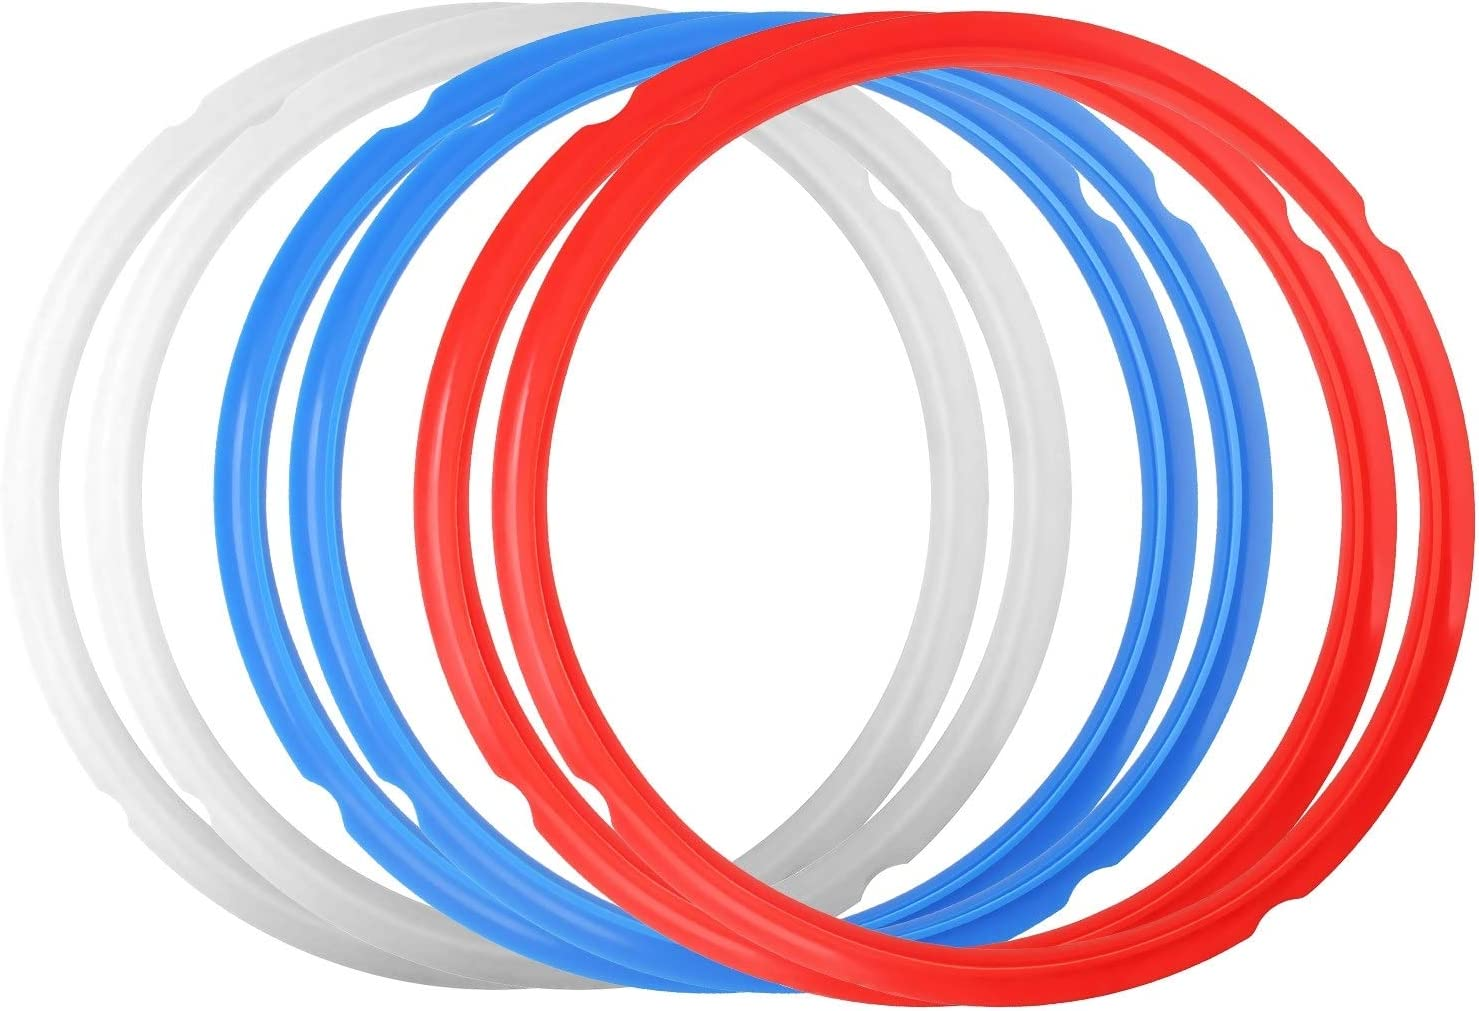 6 Pack Silicone Sealing Rings, Food-Grade Silicone Gasket Accessories 8 Quart Rubber Sealer Replacement for Pressure Cooker and Air Fryer, Blue Red and Clear